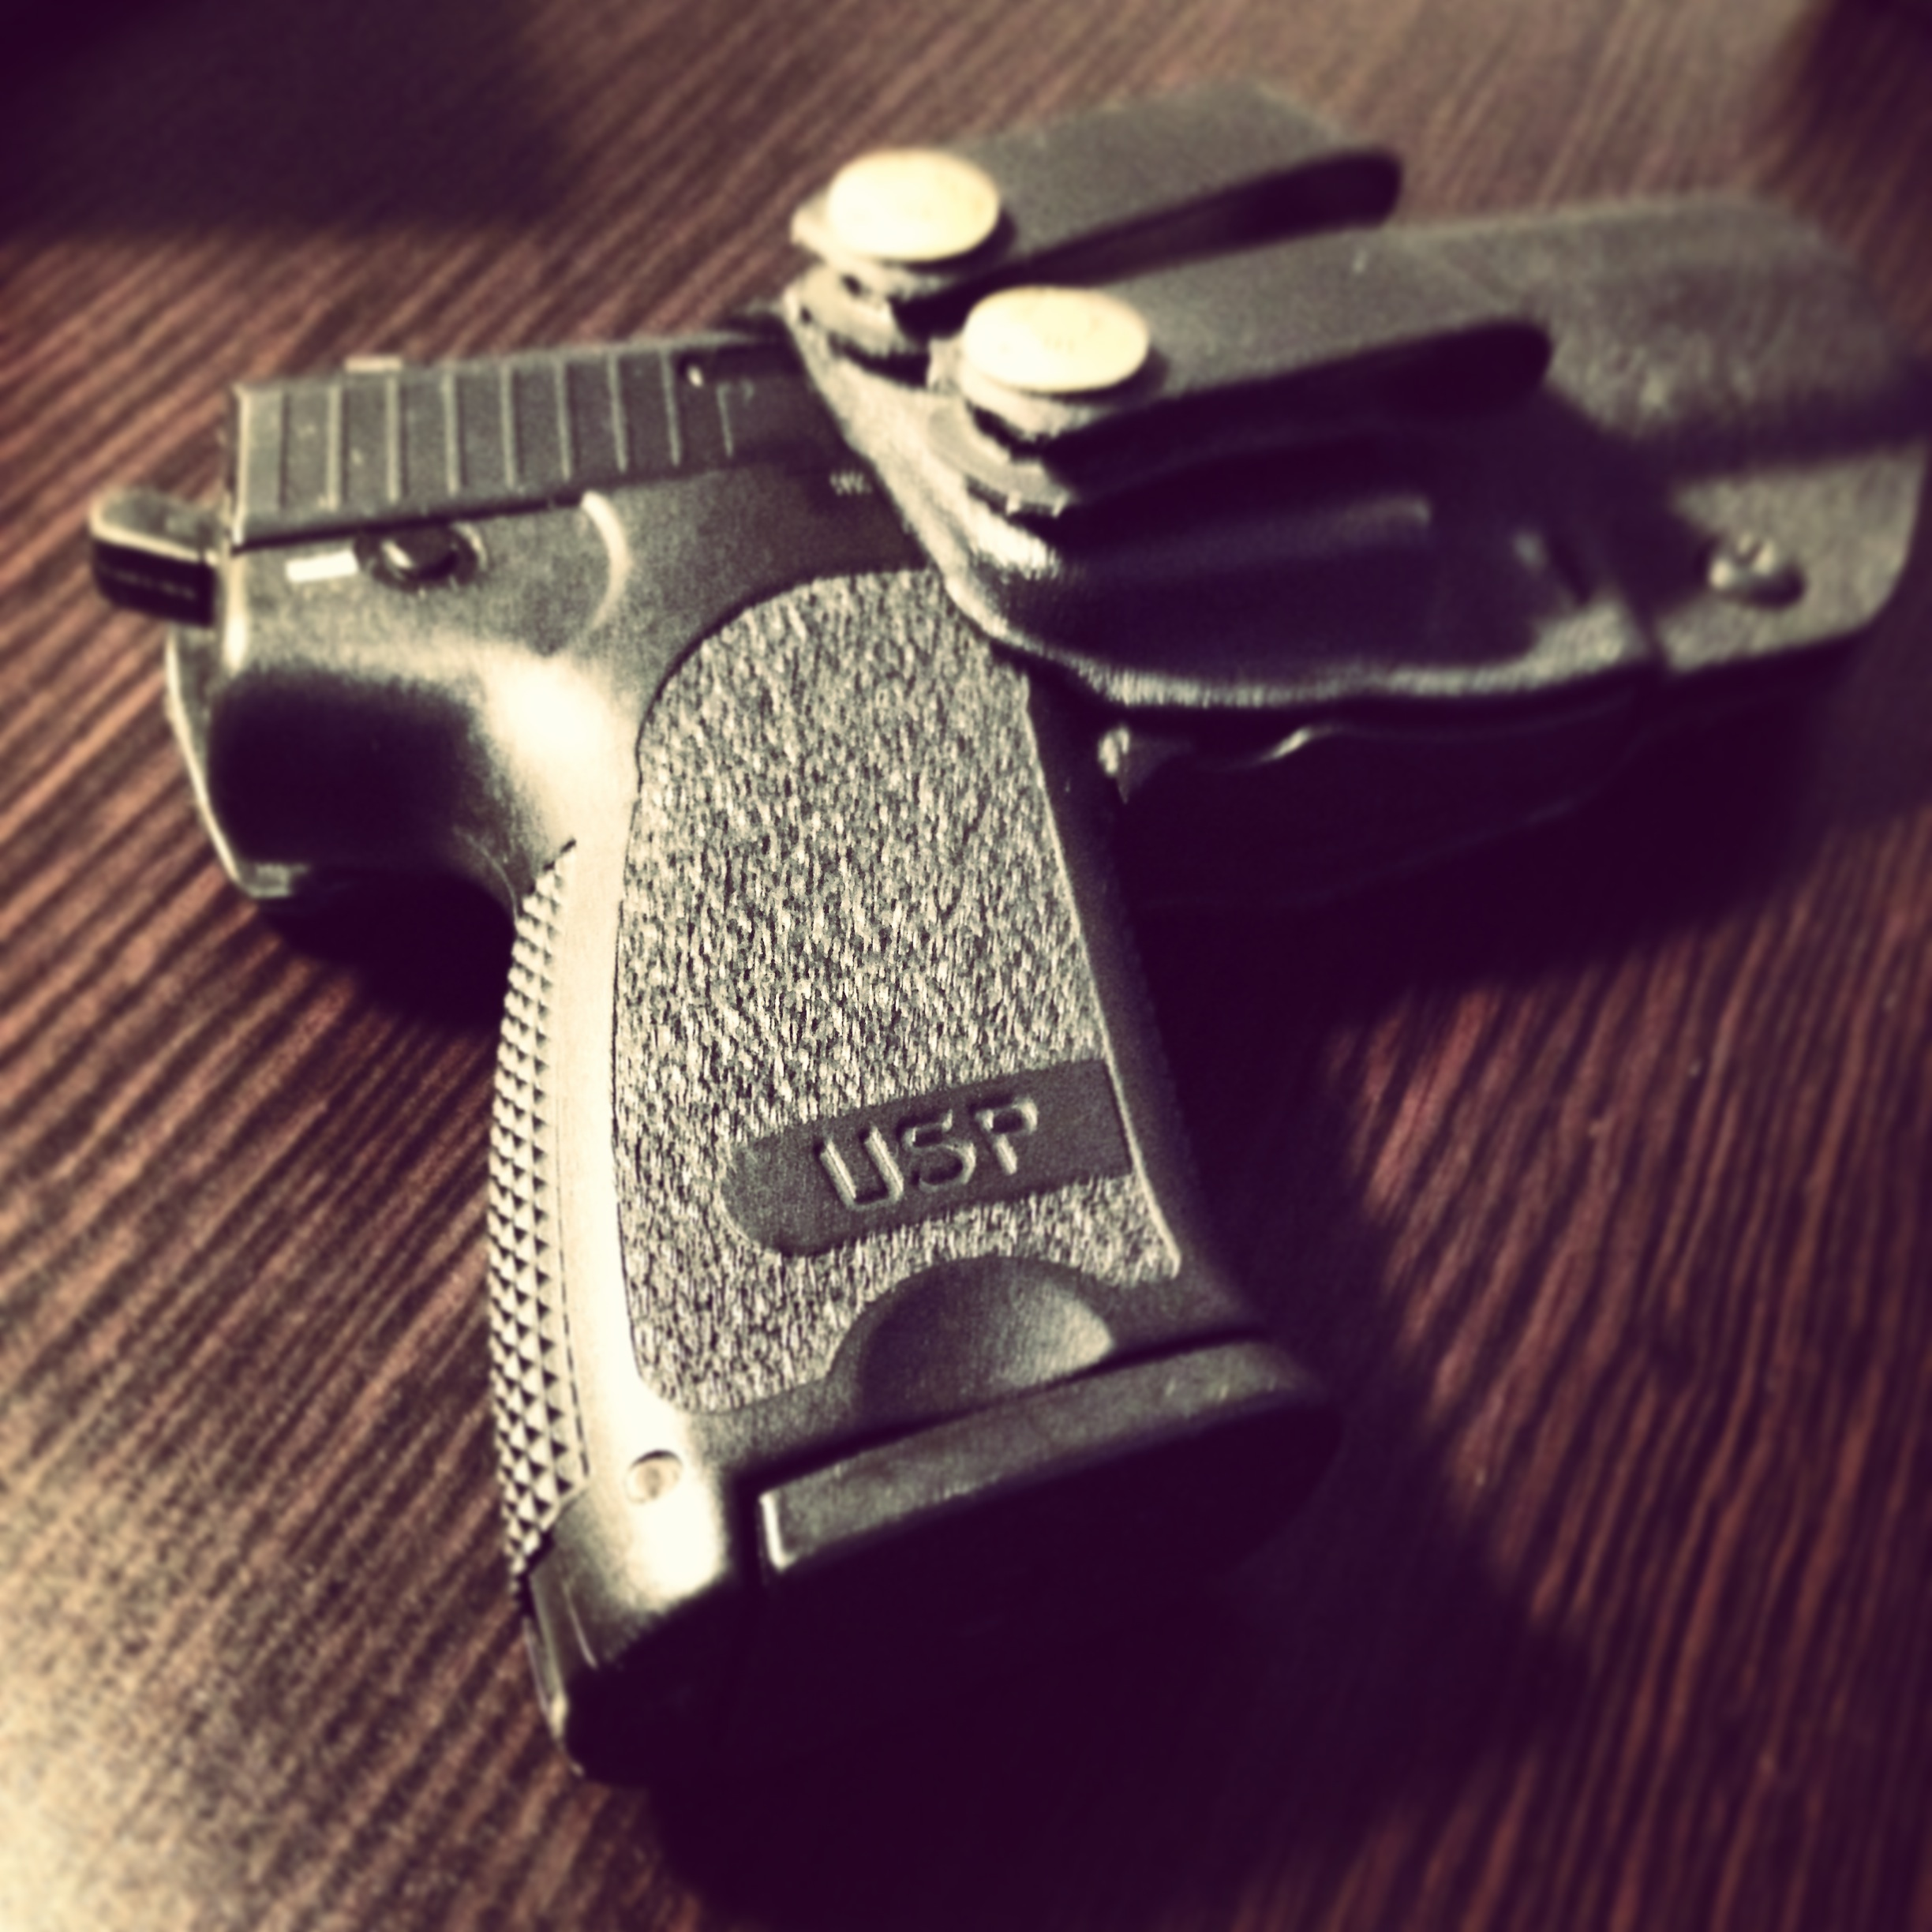 Choosing Your Defensive Handgun